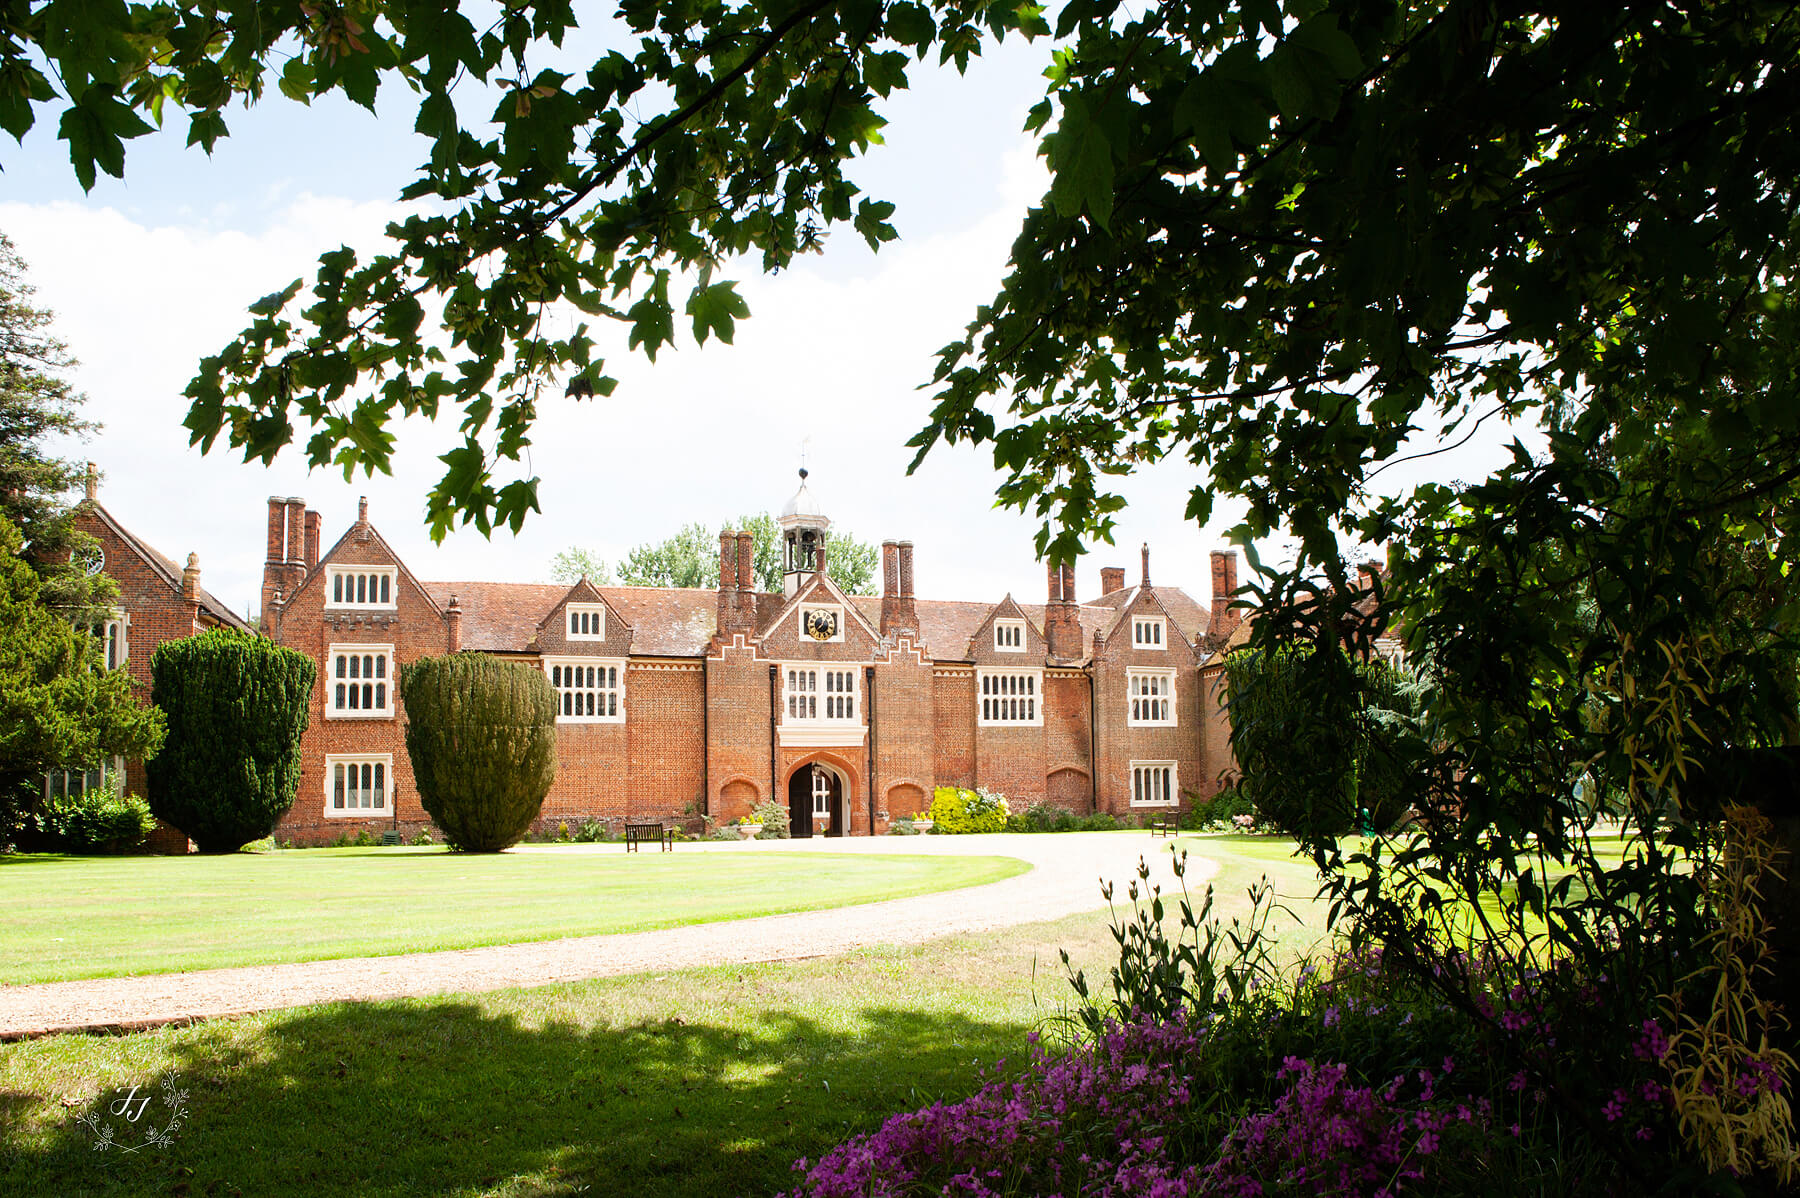 the clock tower entrance and main driveway to Gosfield Hall